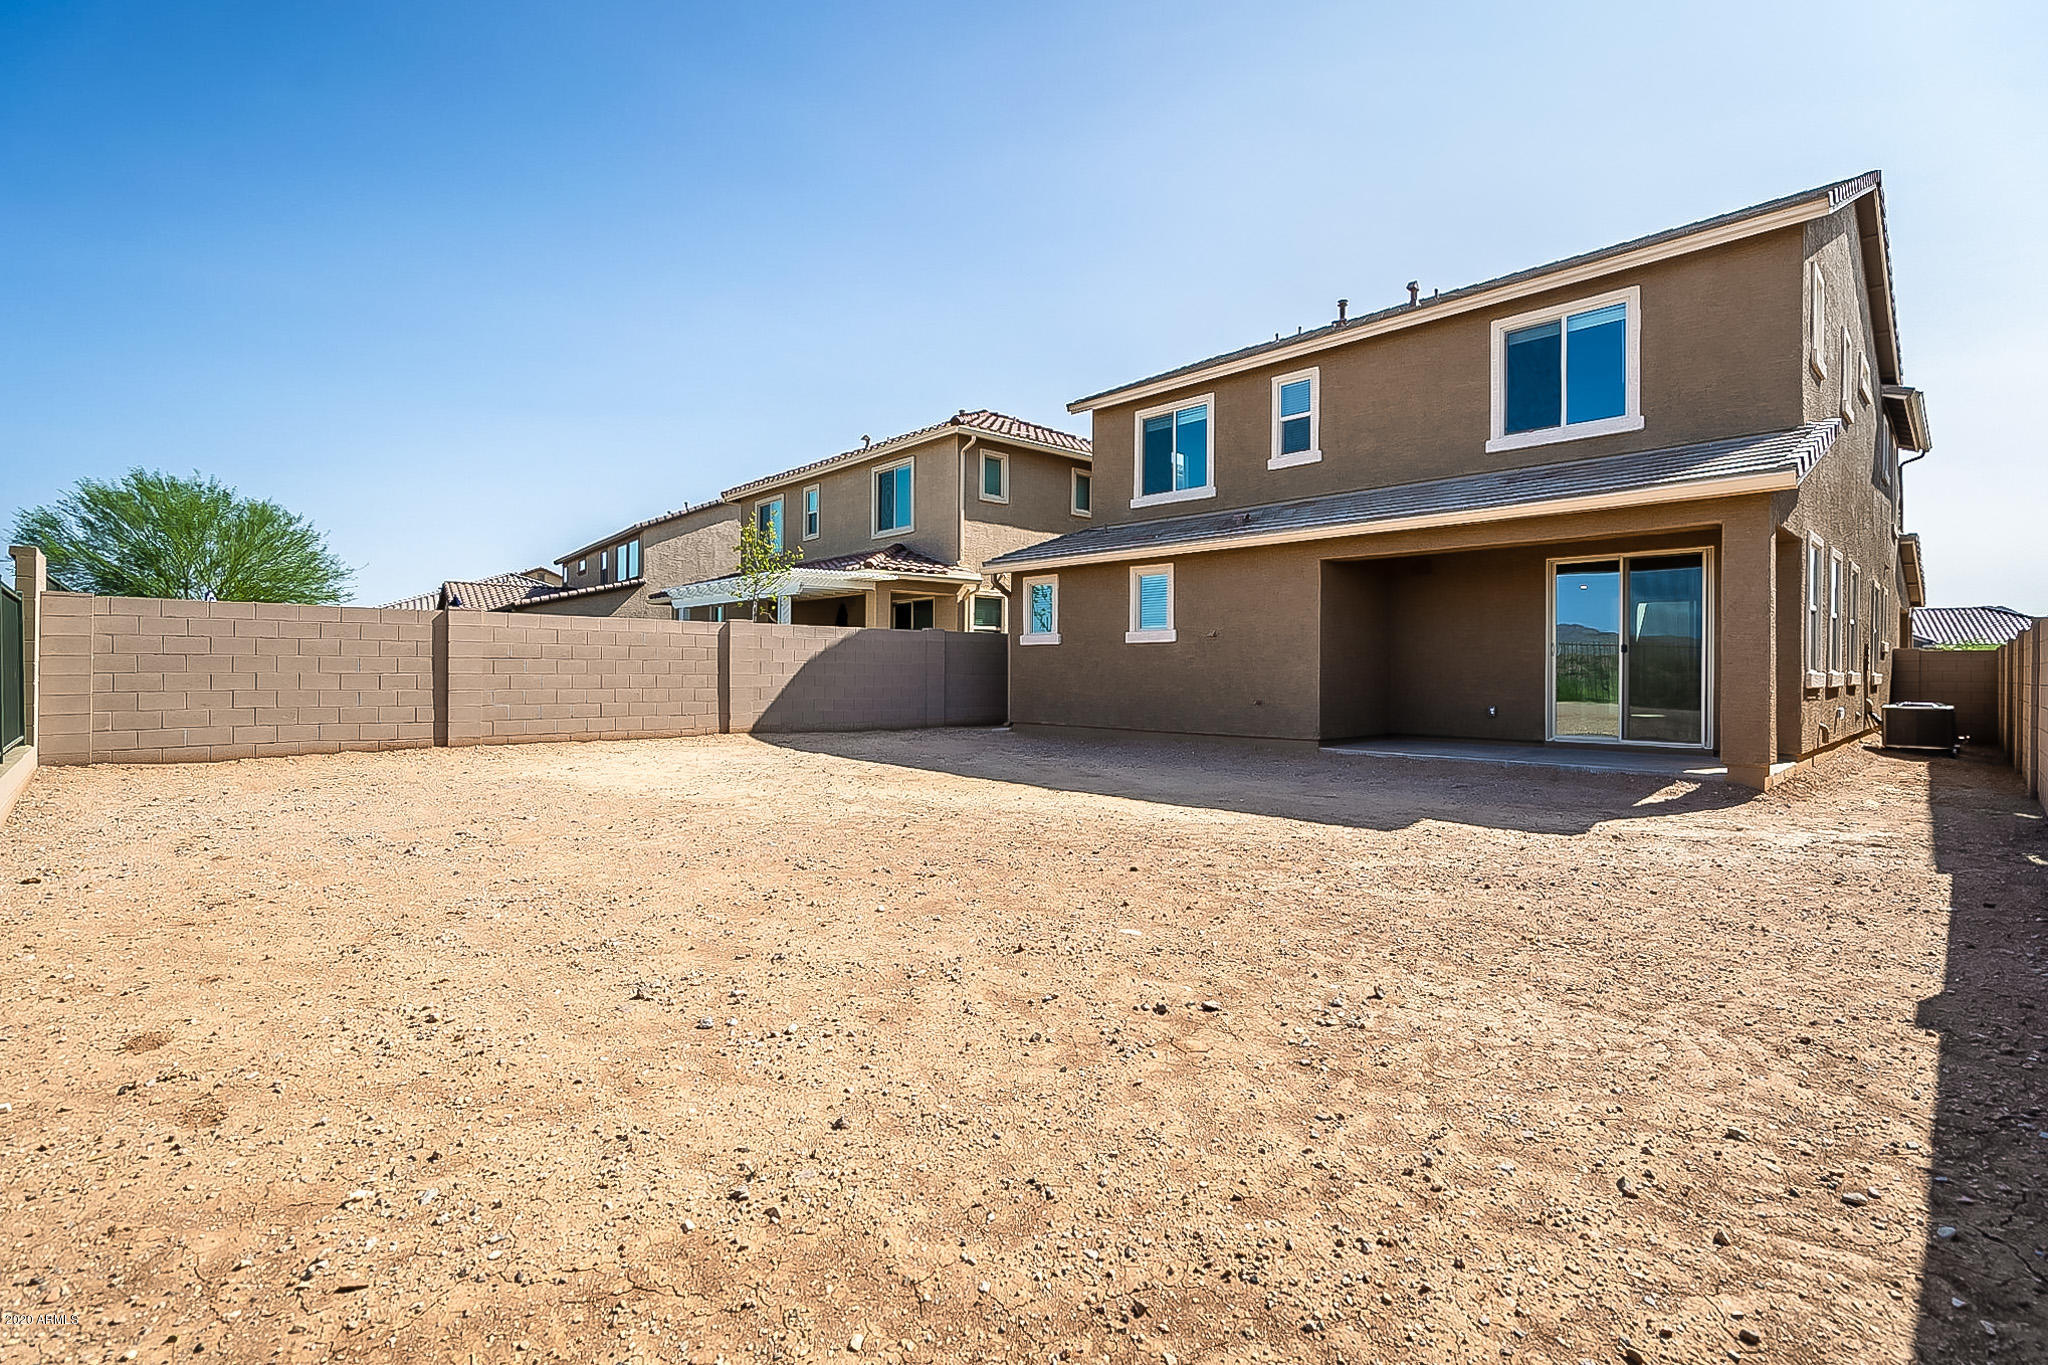 MLS 6095839 44516 N SONORAN ARROYO Lane, New River, AZ 85087 New River AZ Newly Built